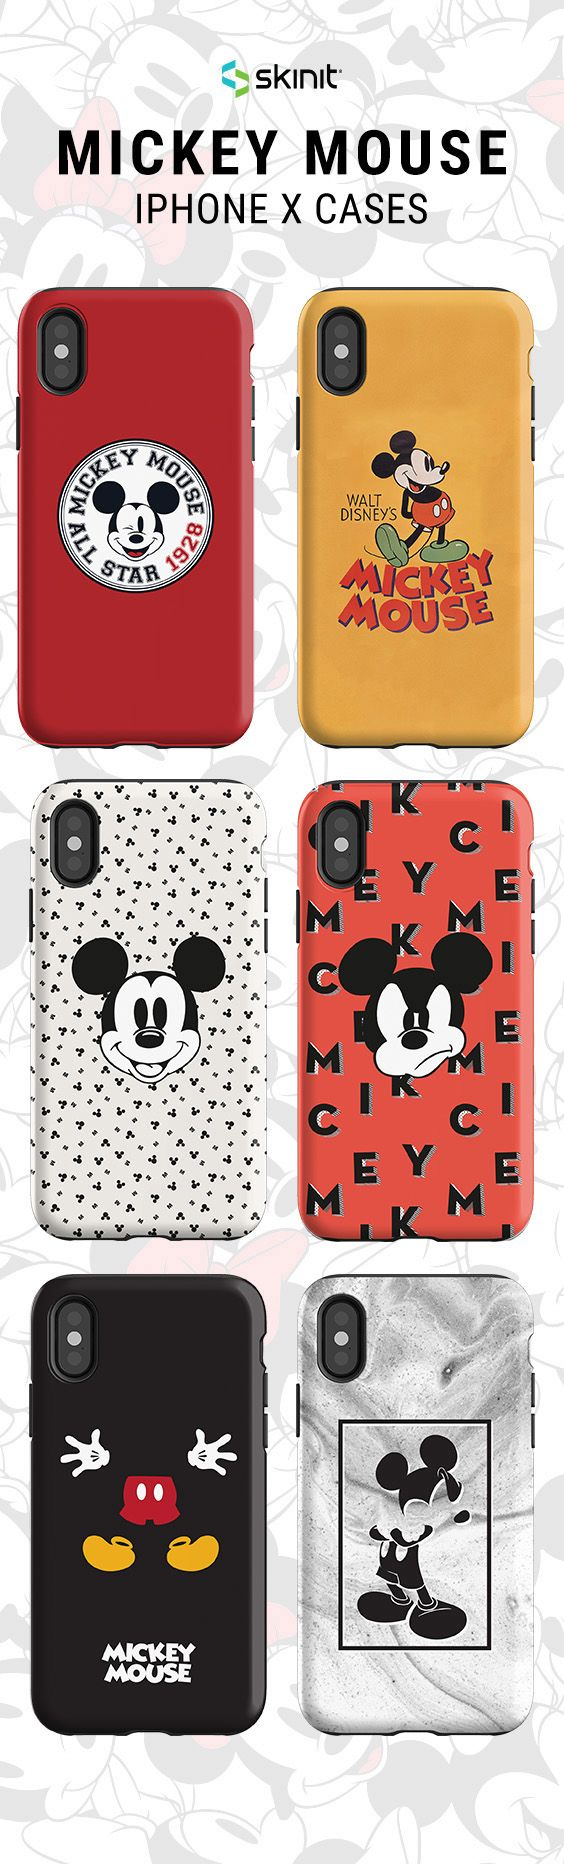 huge selection of 39cf2 4f4b8 Mickey Mouse Iphone X Case | AllBoard.tk - HOT Popular Items